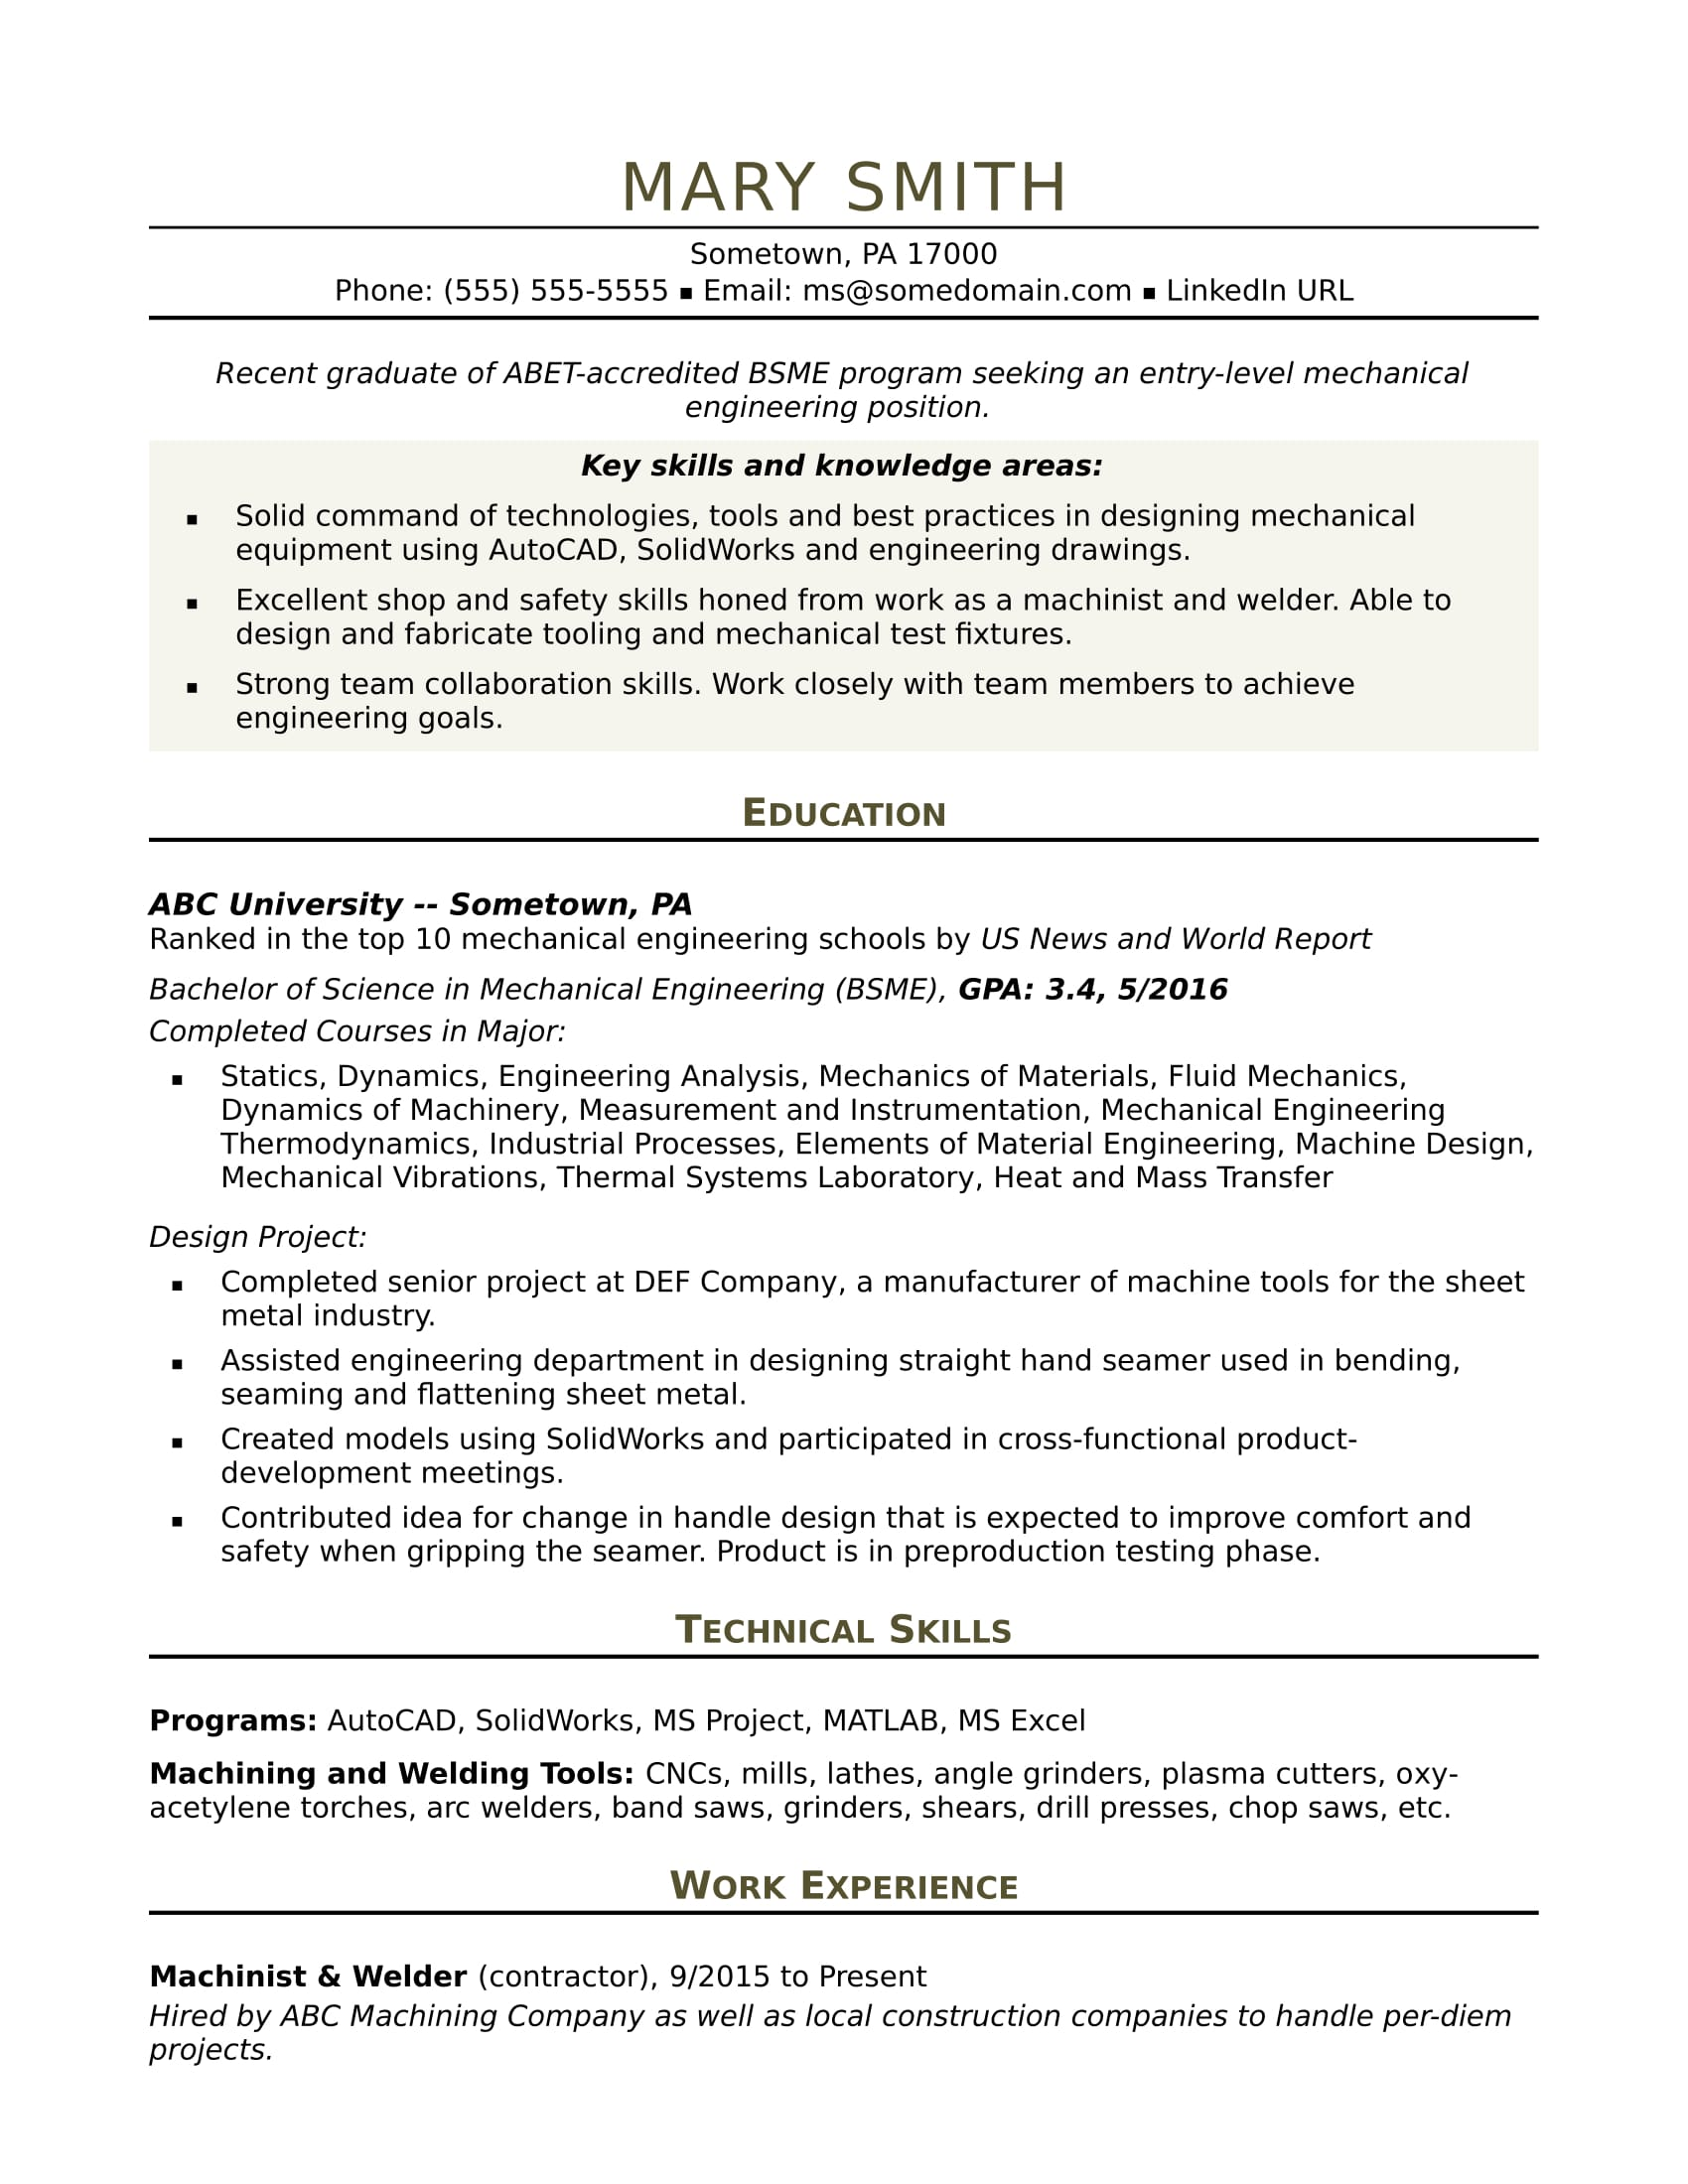 sample resume for an entry level mechanical engineer monster excel experience neuro icu Resume Sample Resume Excel Experience